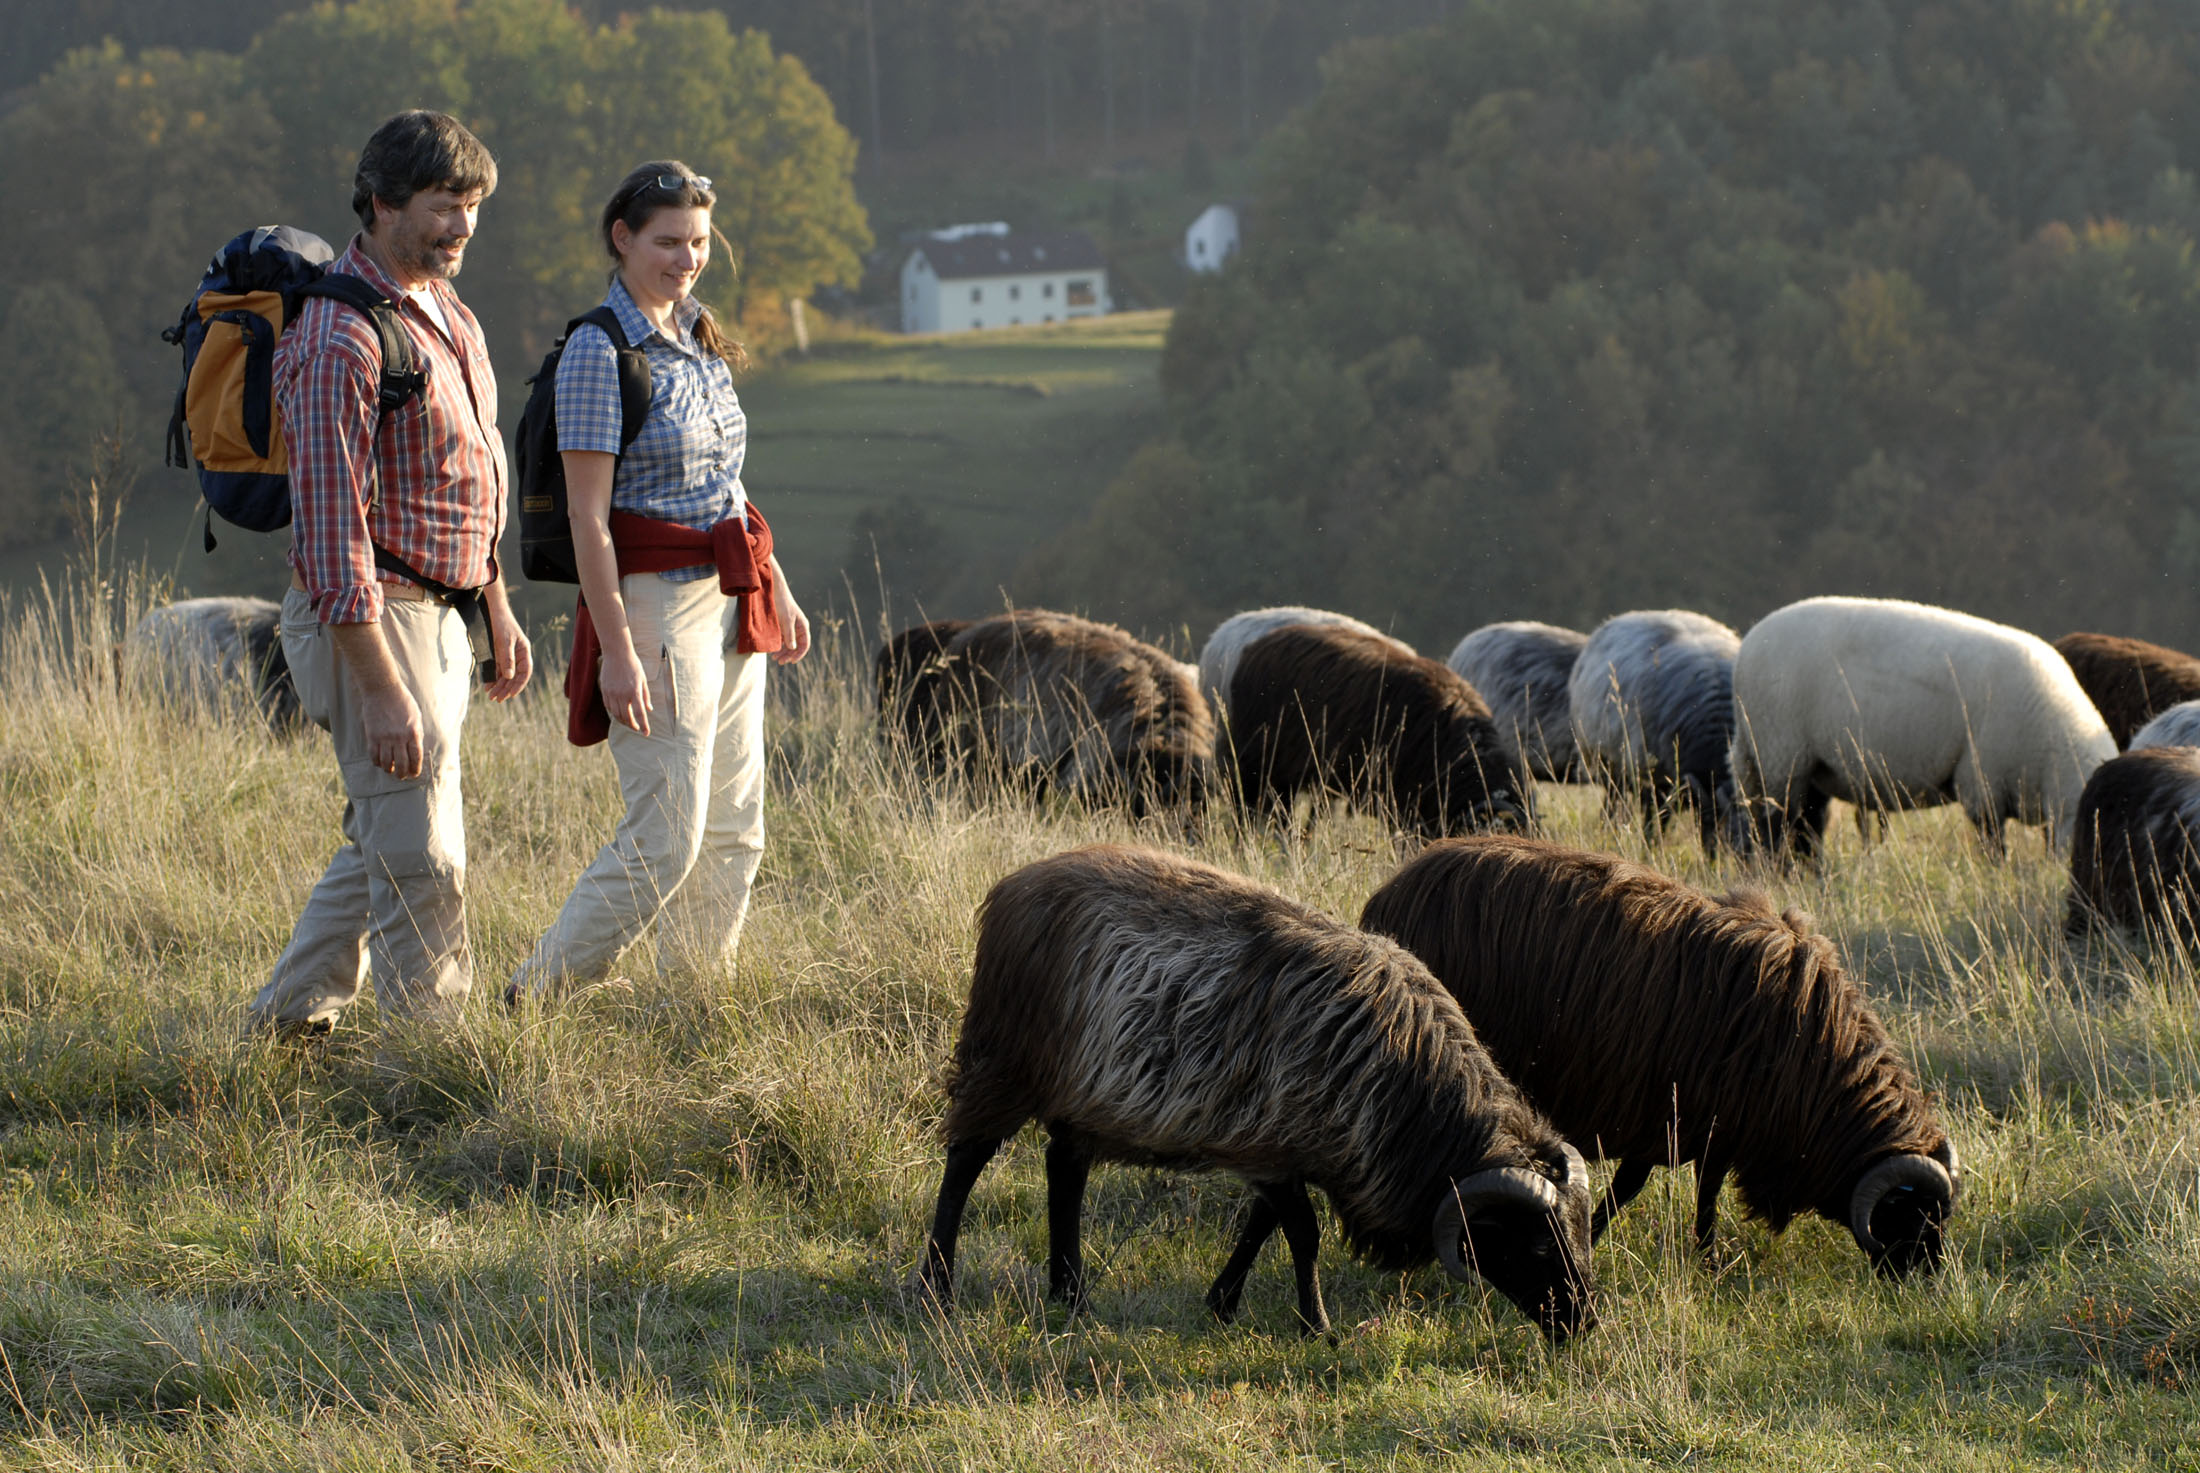 The Jurasteig Trail is a route for all seekers, where you hike along alpine paths and through meadows.